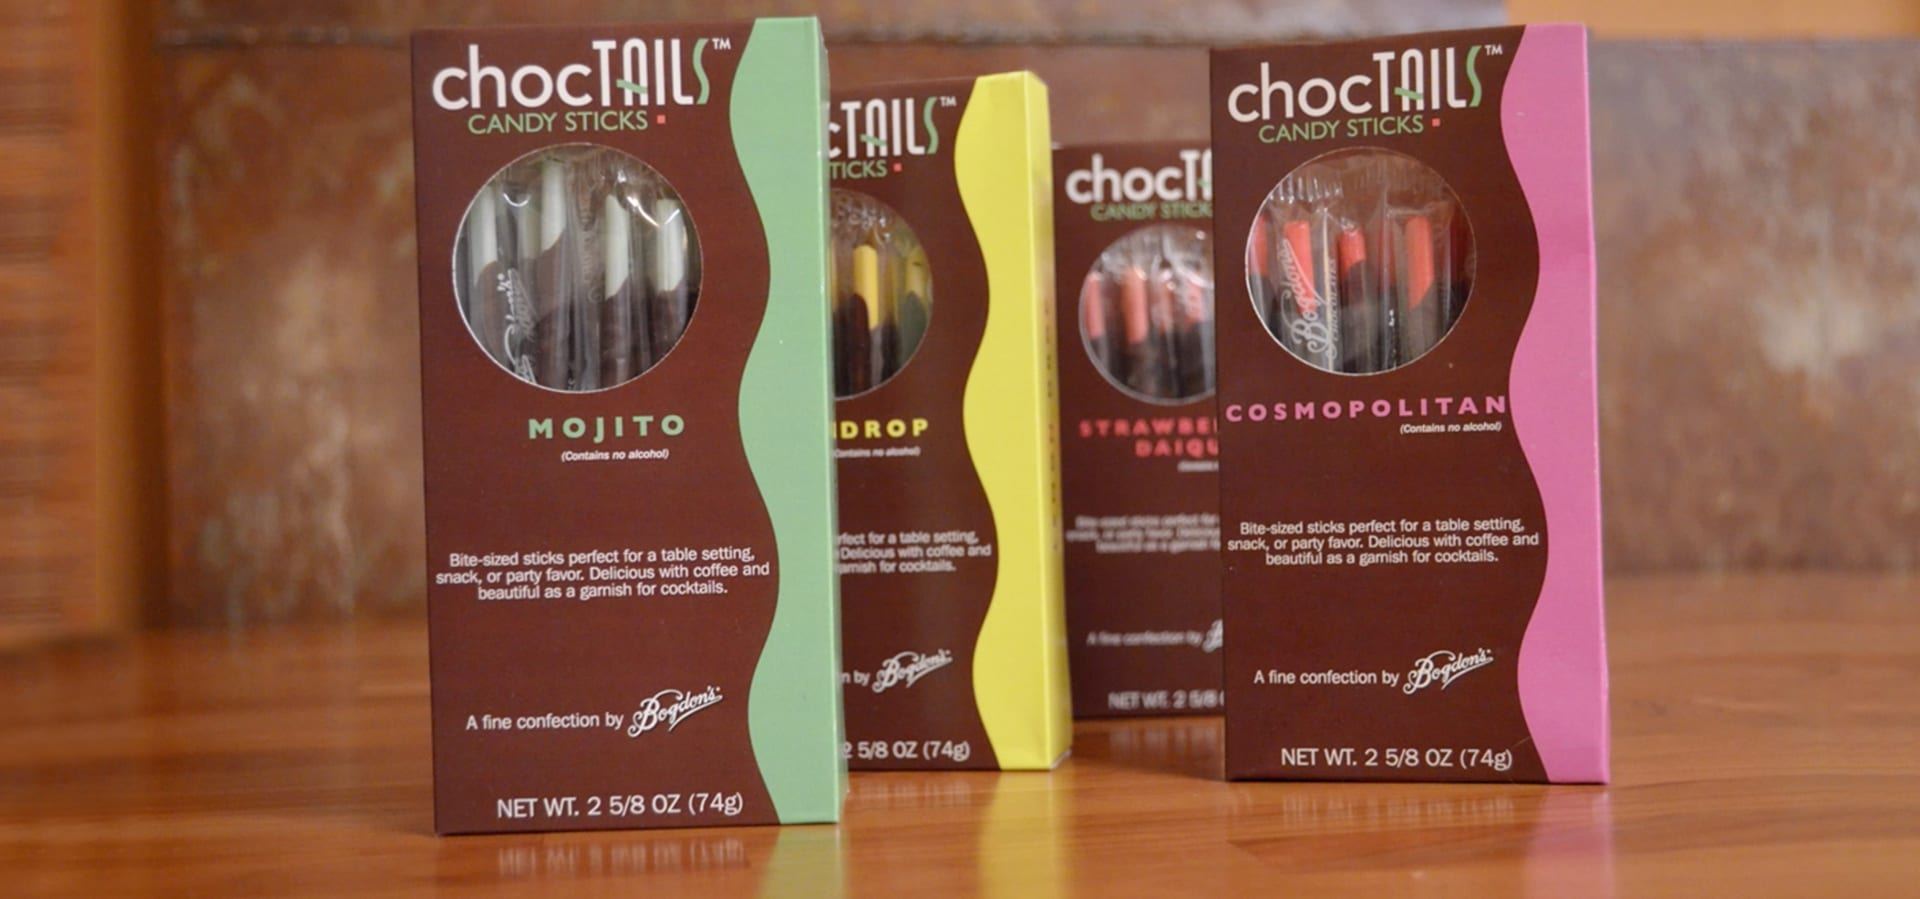 4 flavors of Choctails candy sticks: mojito, lemon drop, strawberry daiquiri, and cosmopolitan